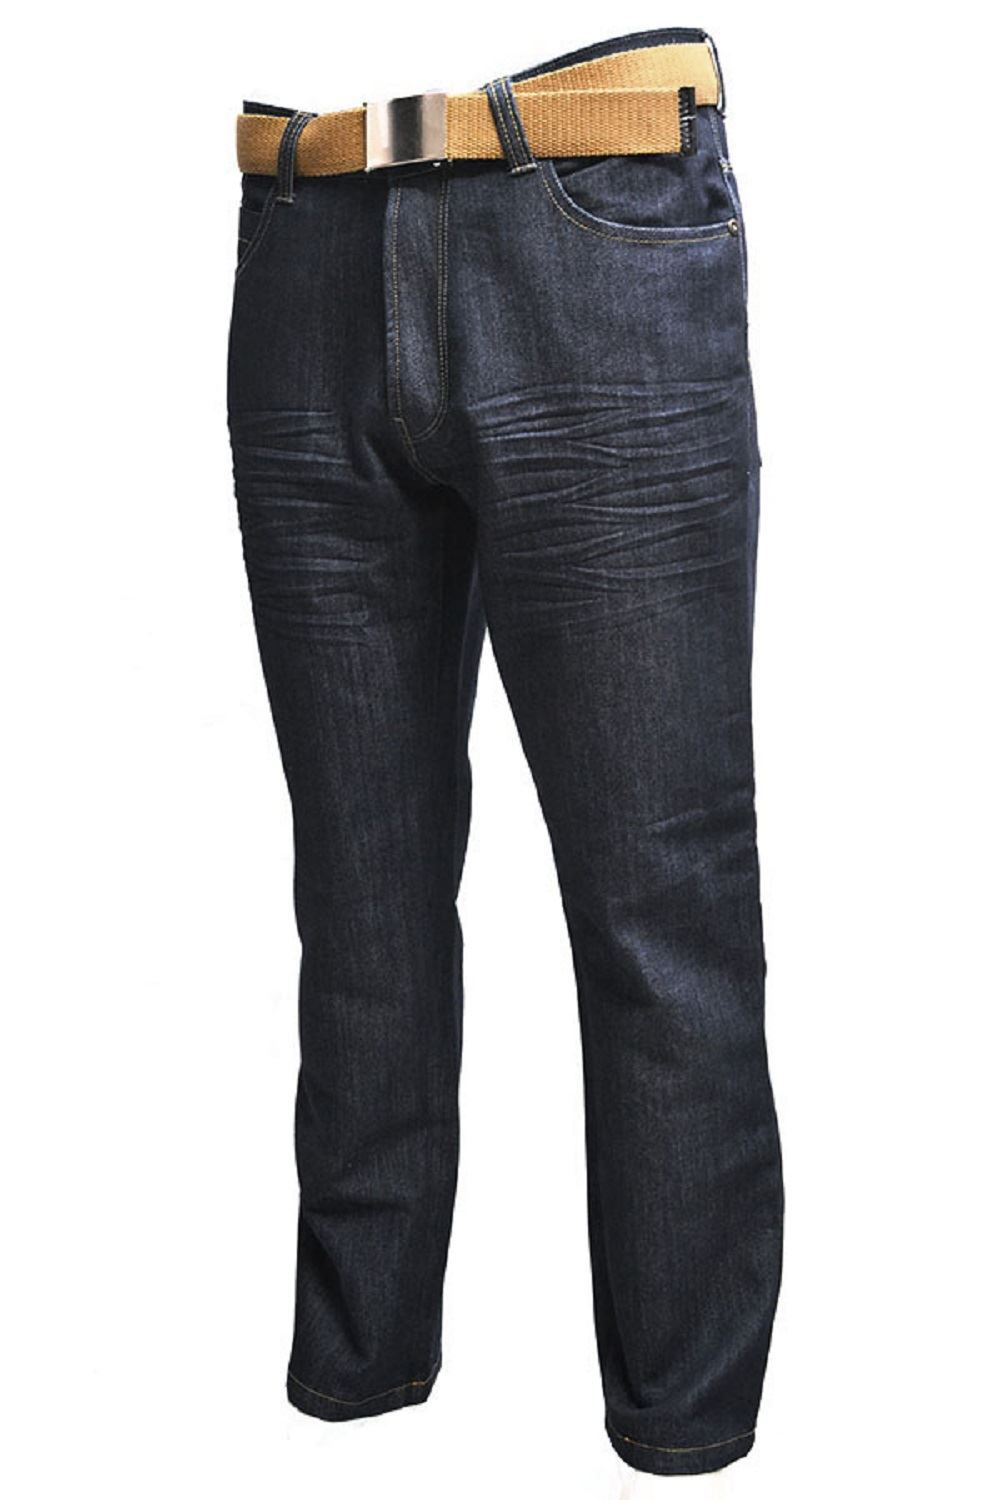 Mens-Classic-Fit-Black-Indigo-Jeans-Kori-By-Creon-Previs thumbnail 13